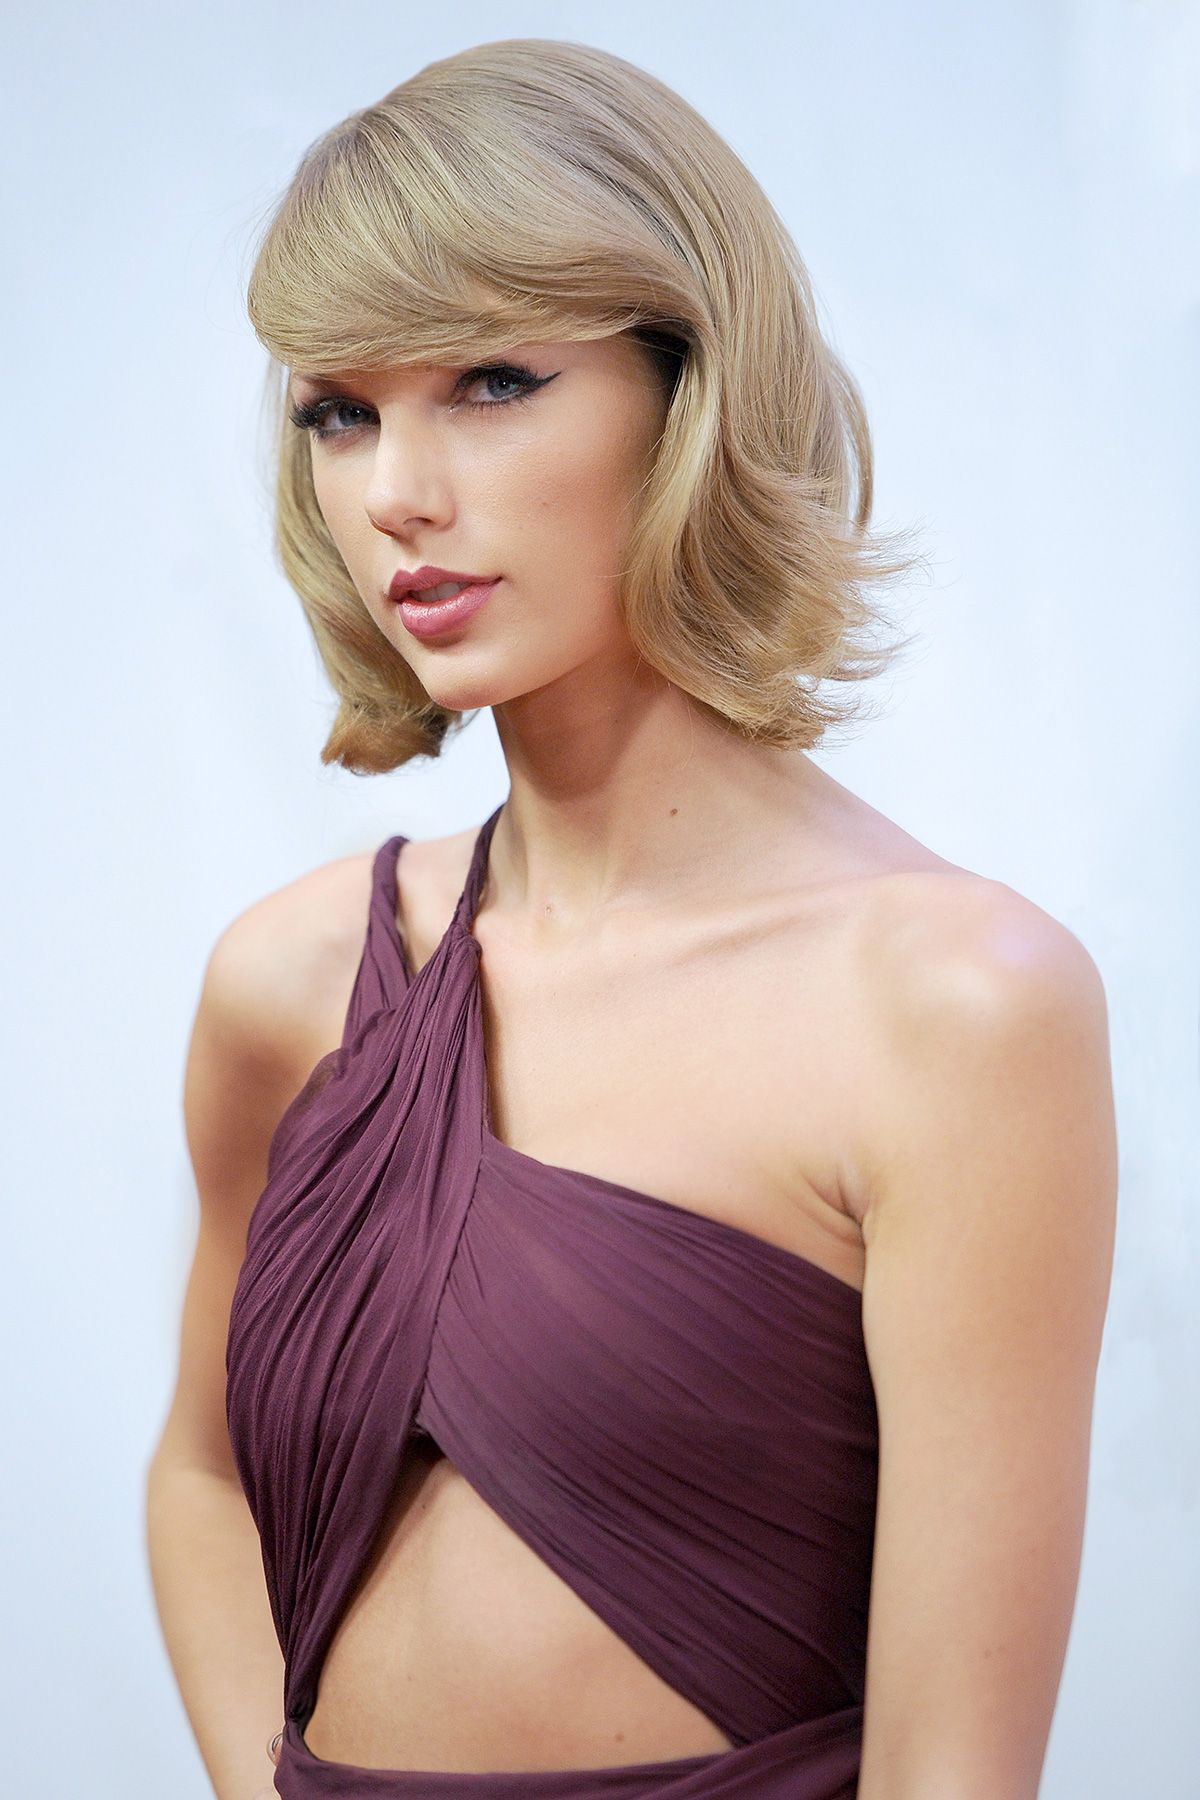 pics 12. Taylor Swift